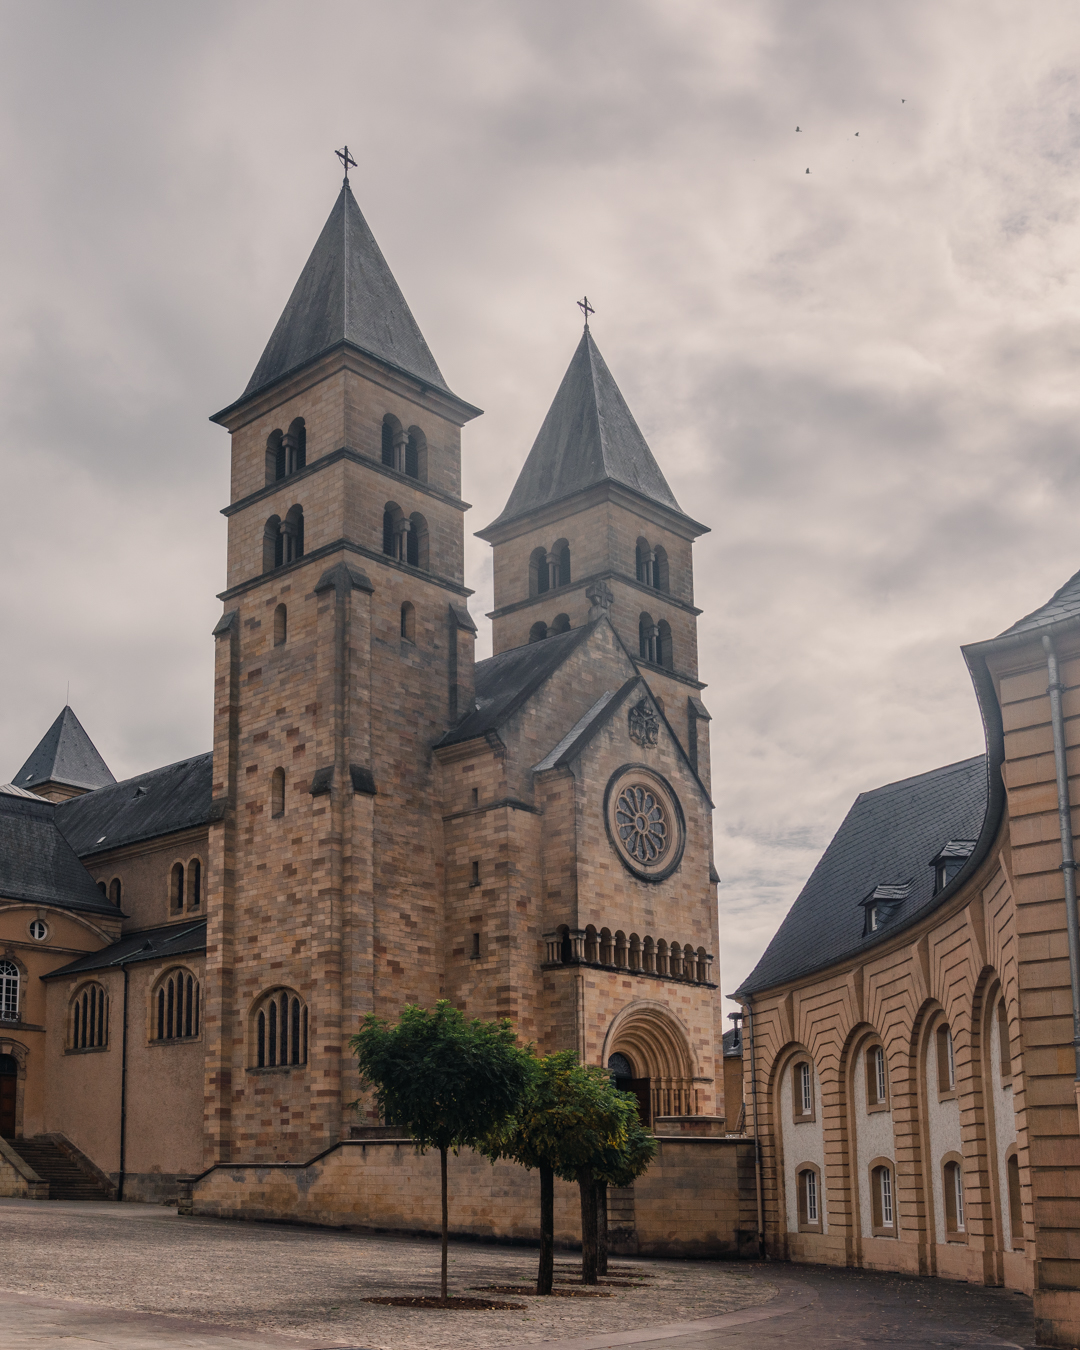 The abbey of Echternach in Luxembourg